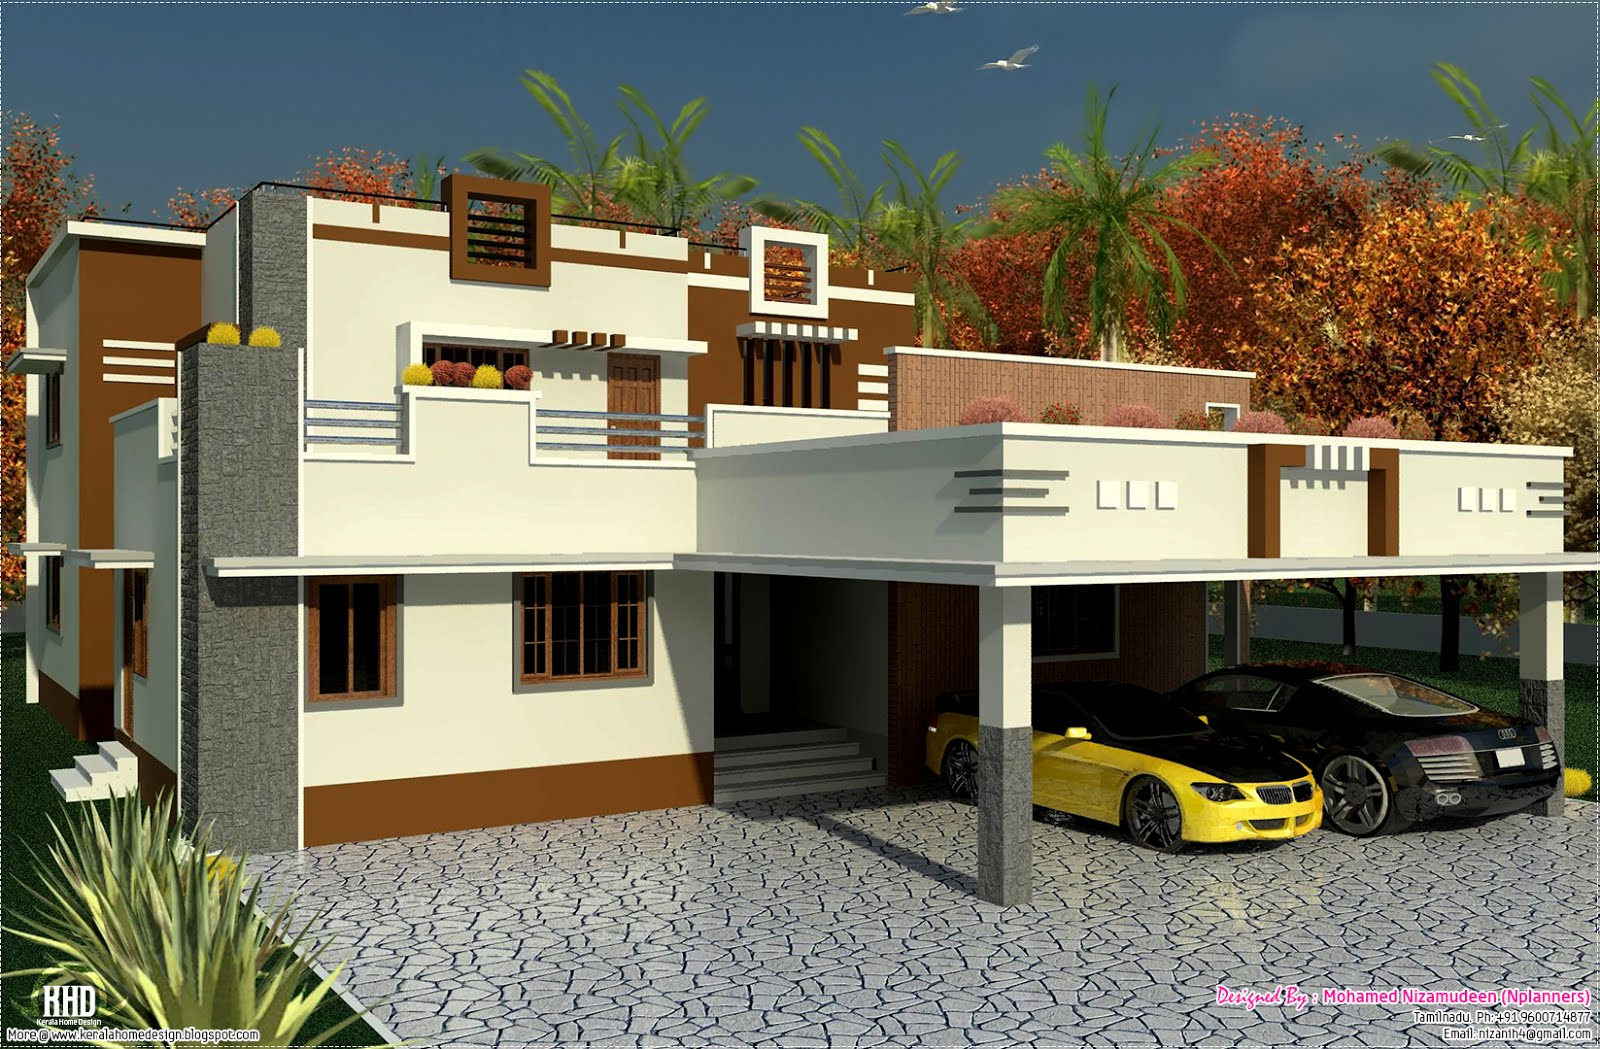 South Indian home design. South Indian home design in 3476 sq feet   KeRaLa HoMe